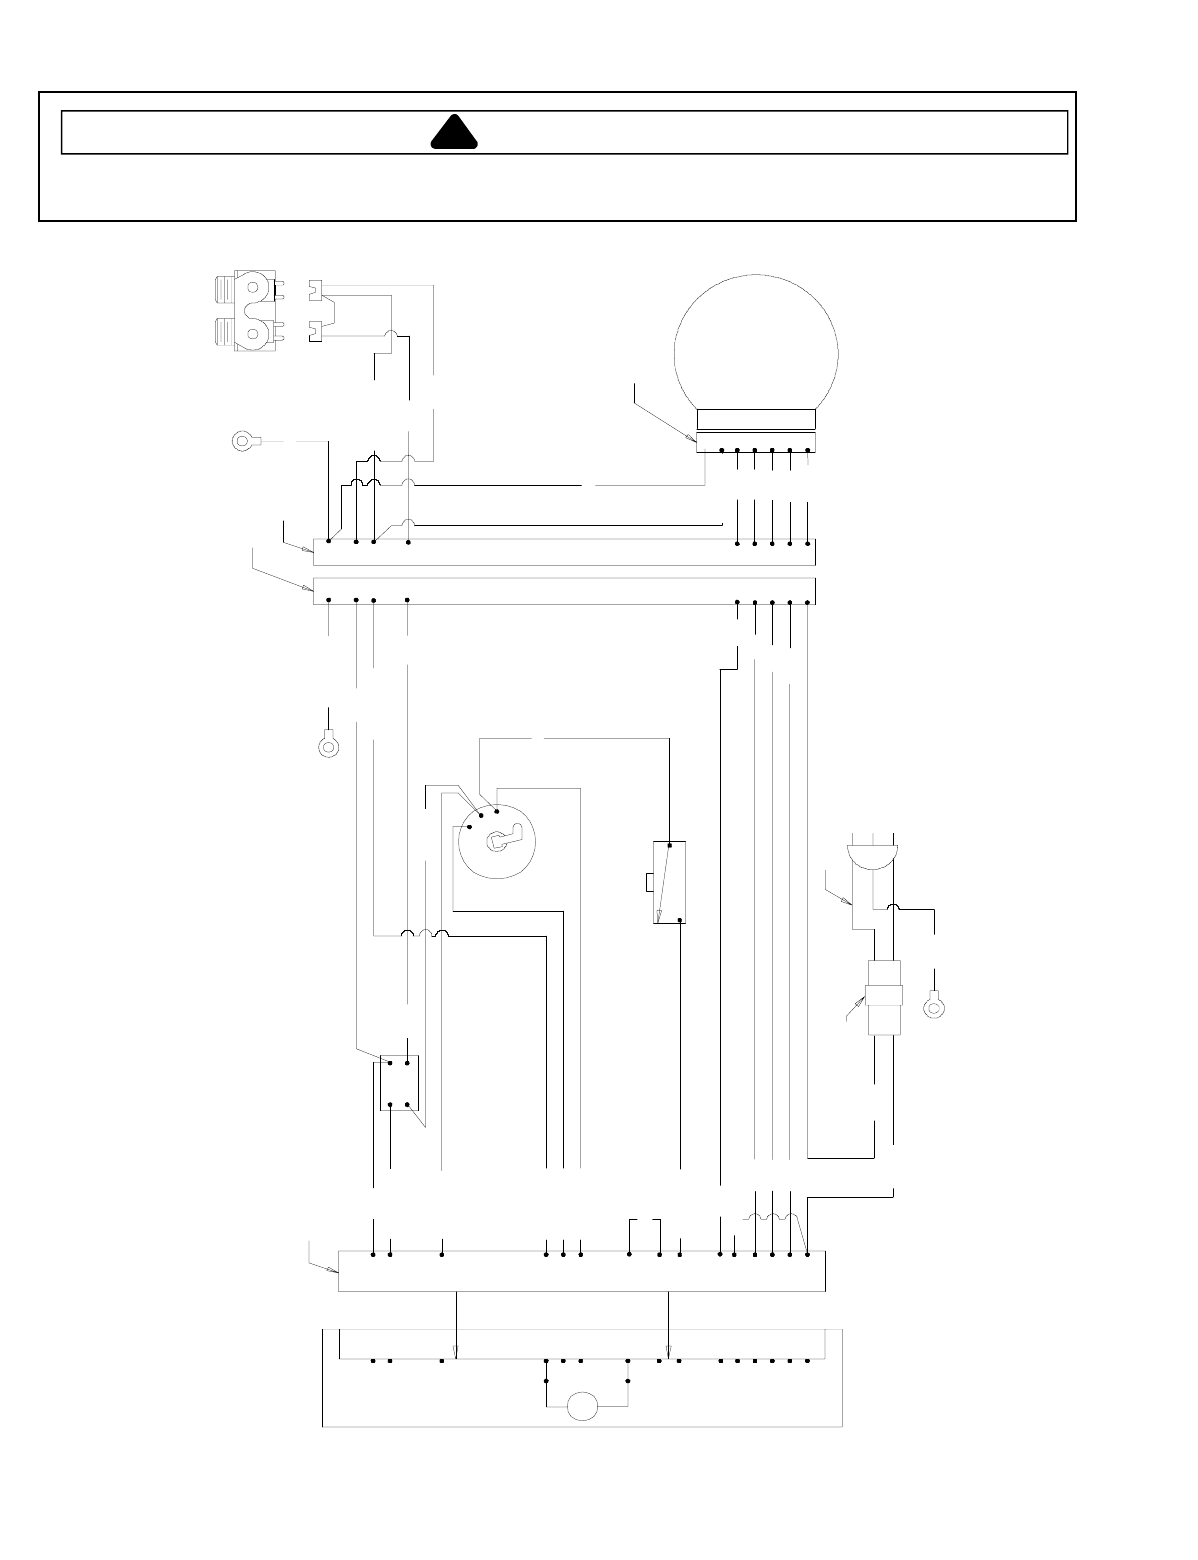 hight resolution of l6 20r wiring diagram database6 20r wiring diagram database 6 20r receptacle wiring l6 20r